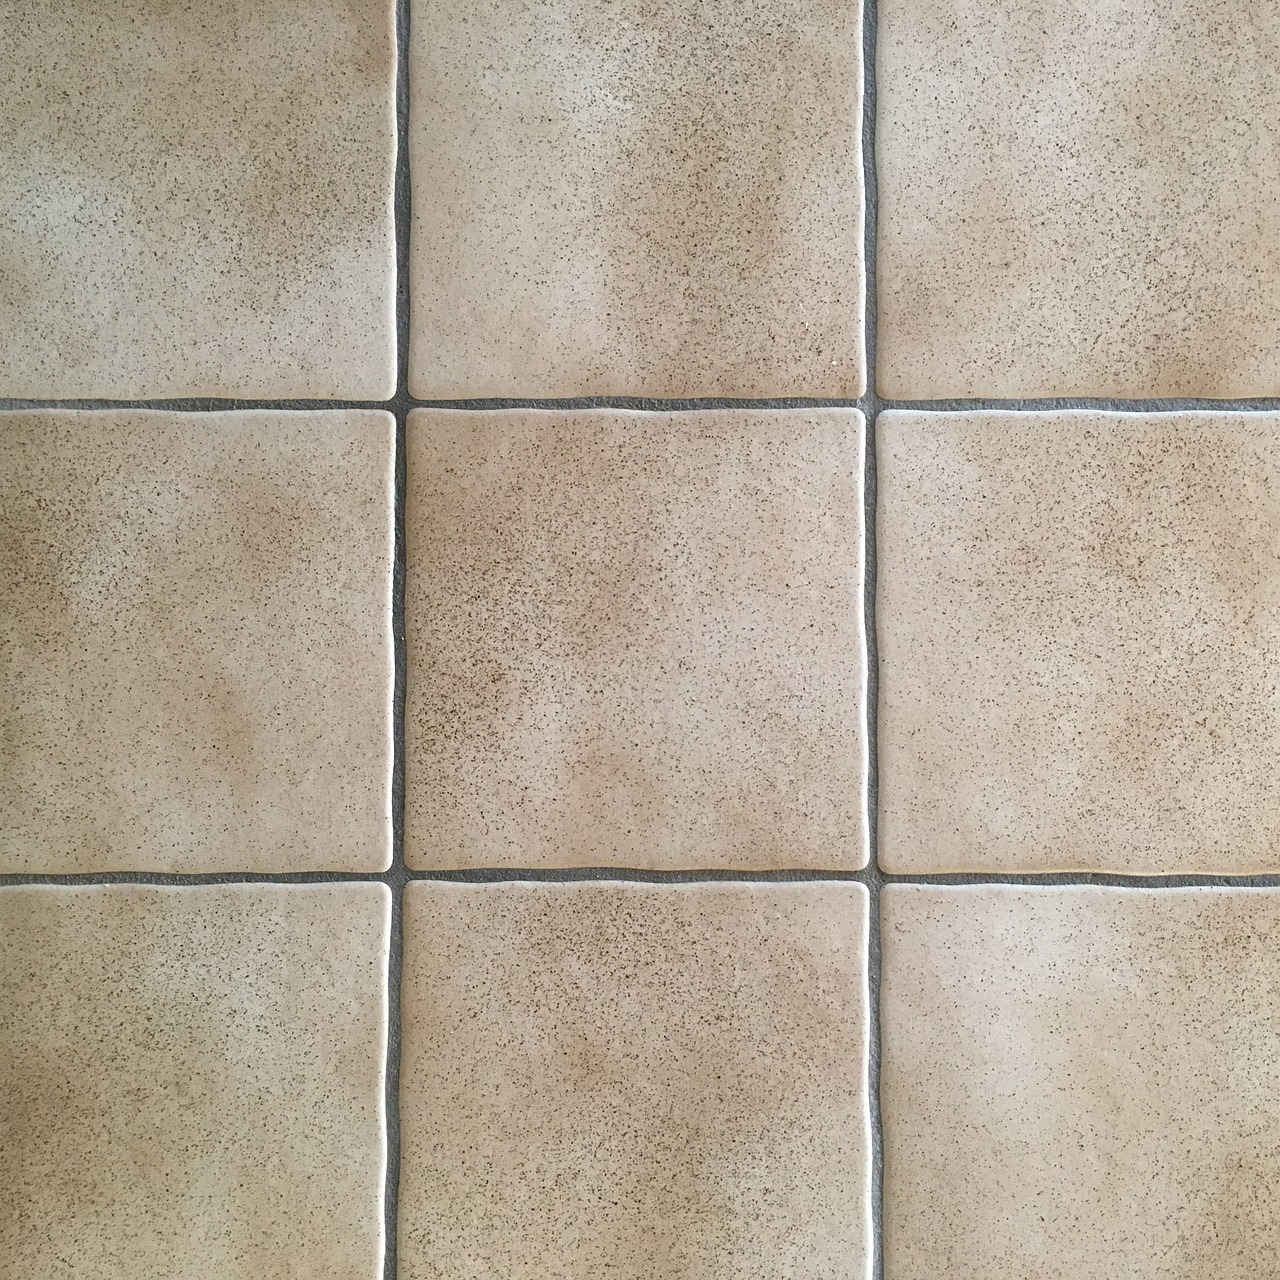 tampa wholesale pricing for stone tiles